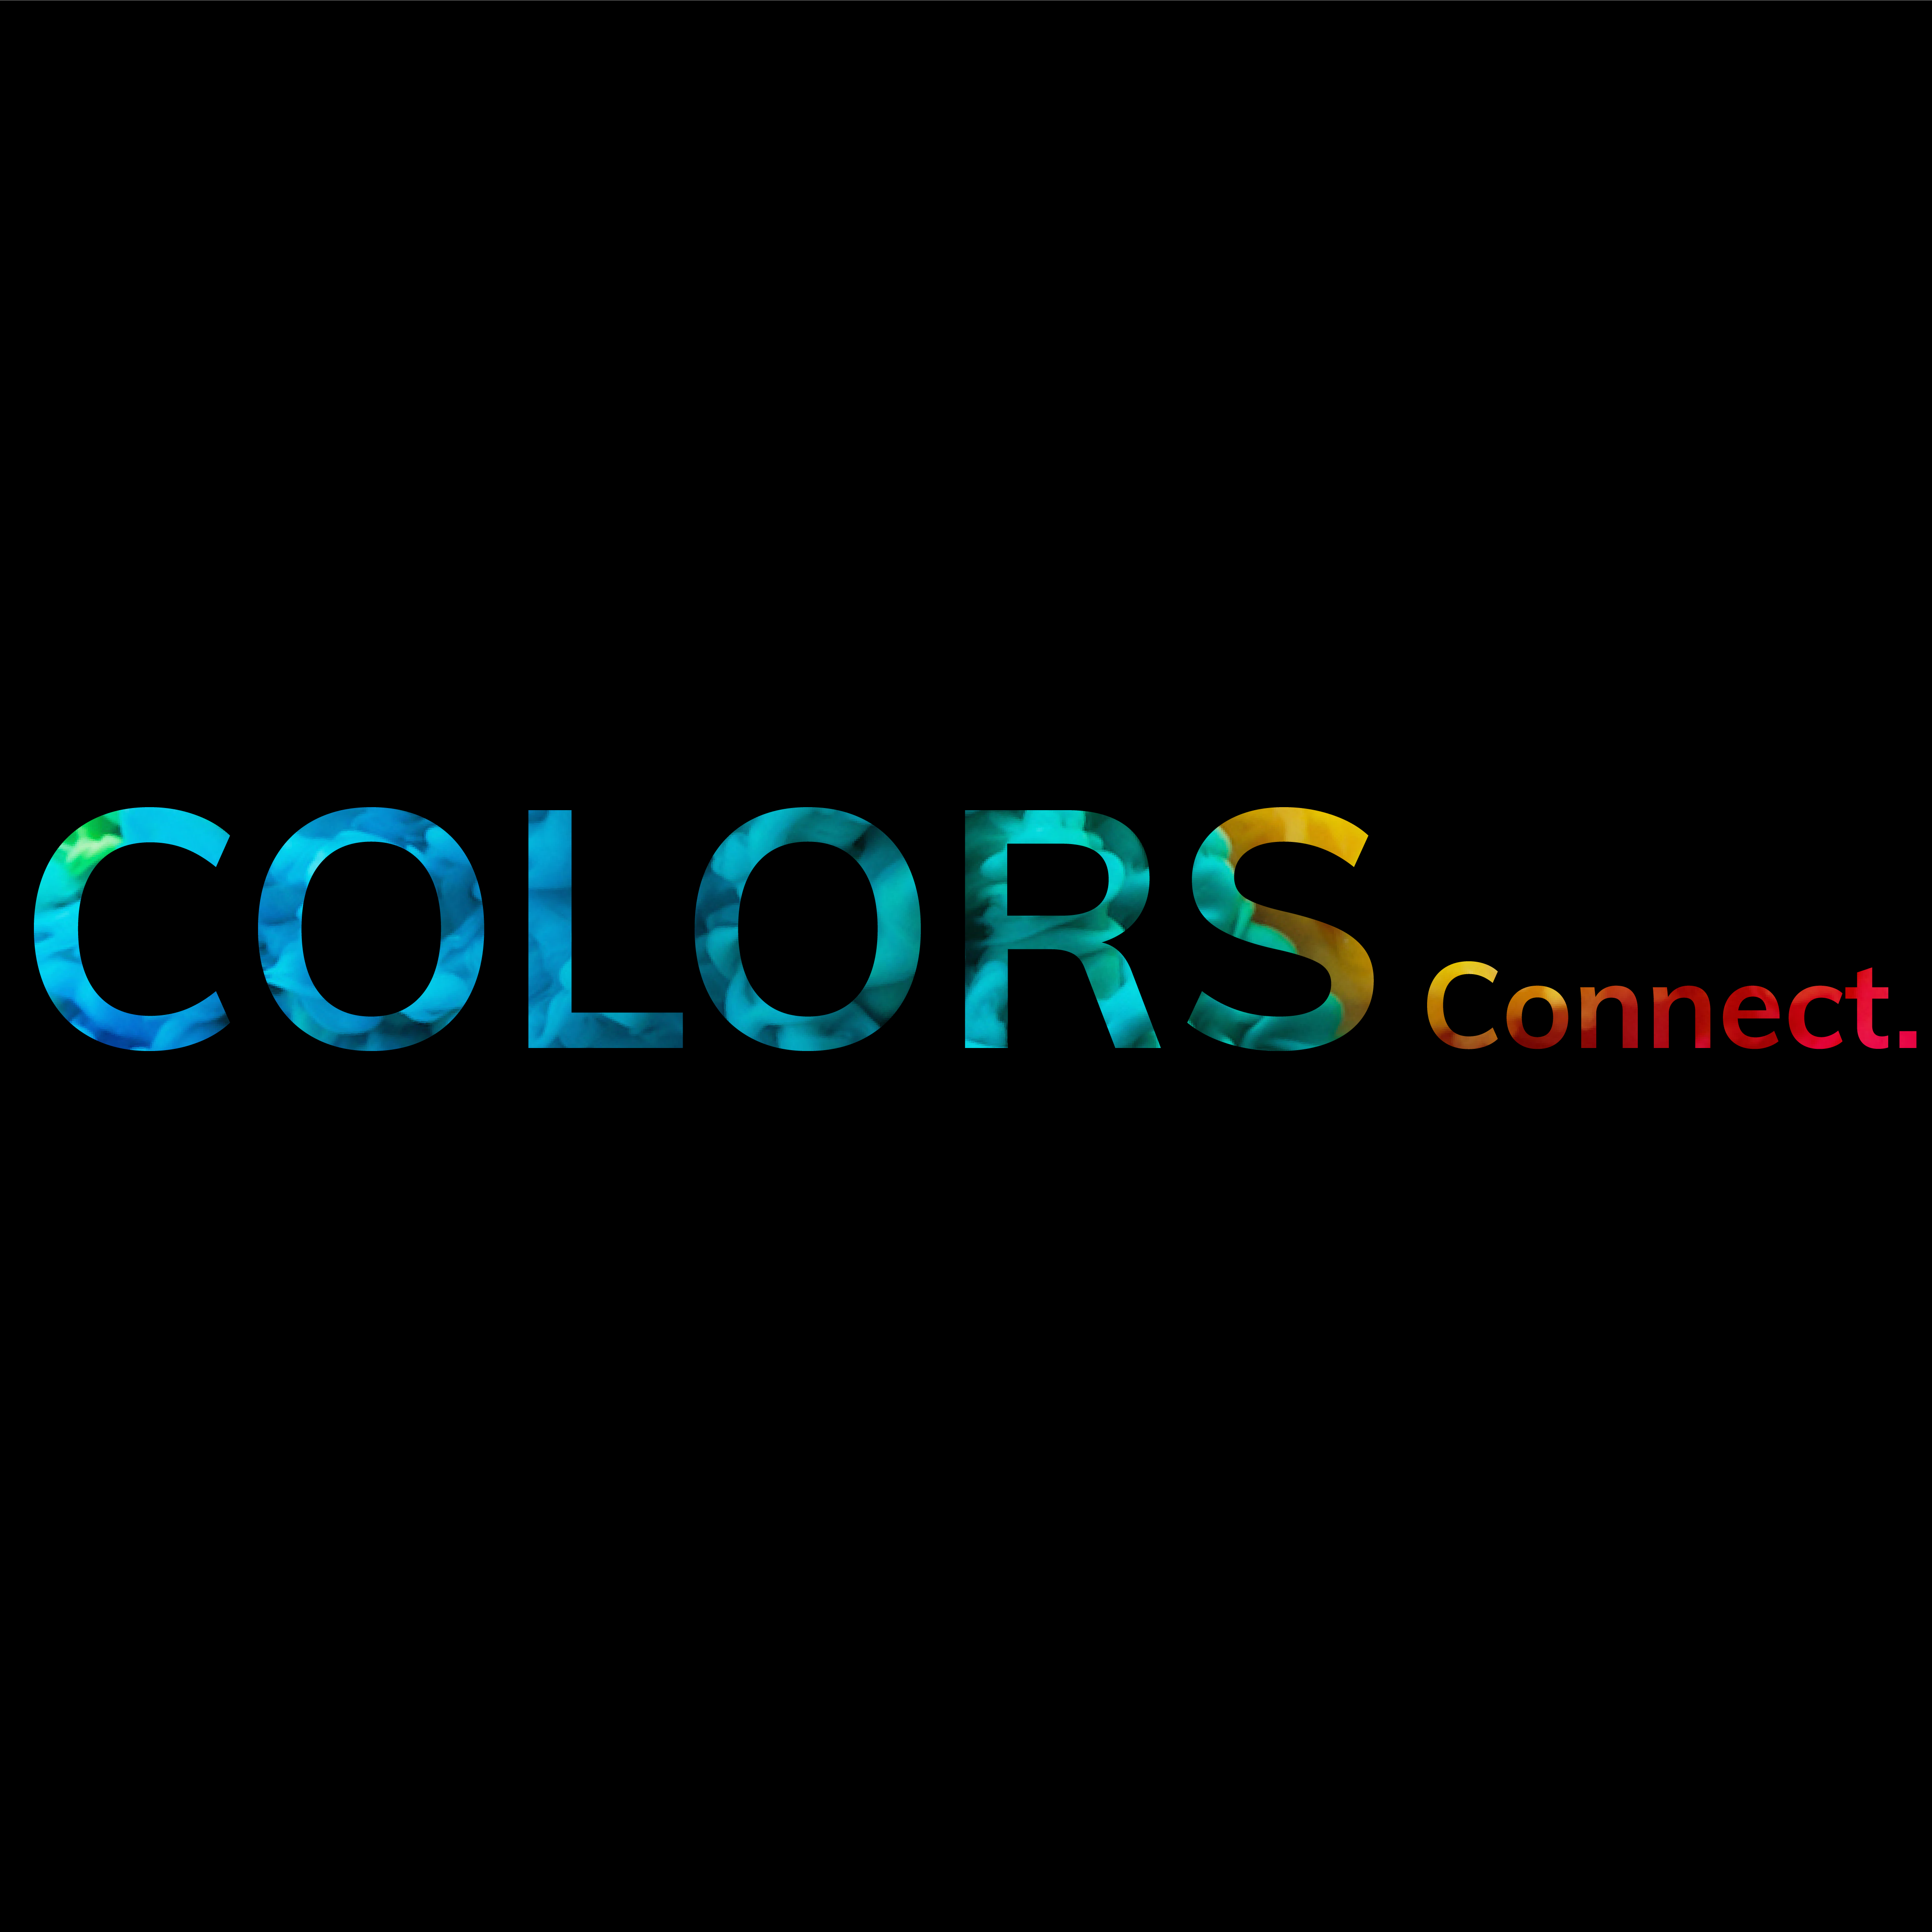 Connect The Colors >> Radionomy Colors Connect Free Online Radio Station